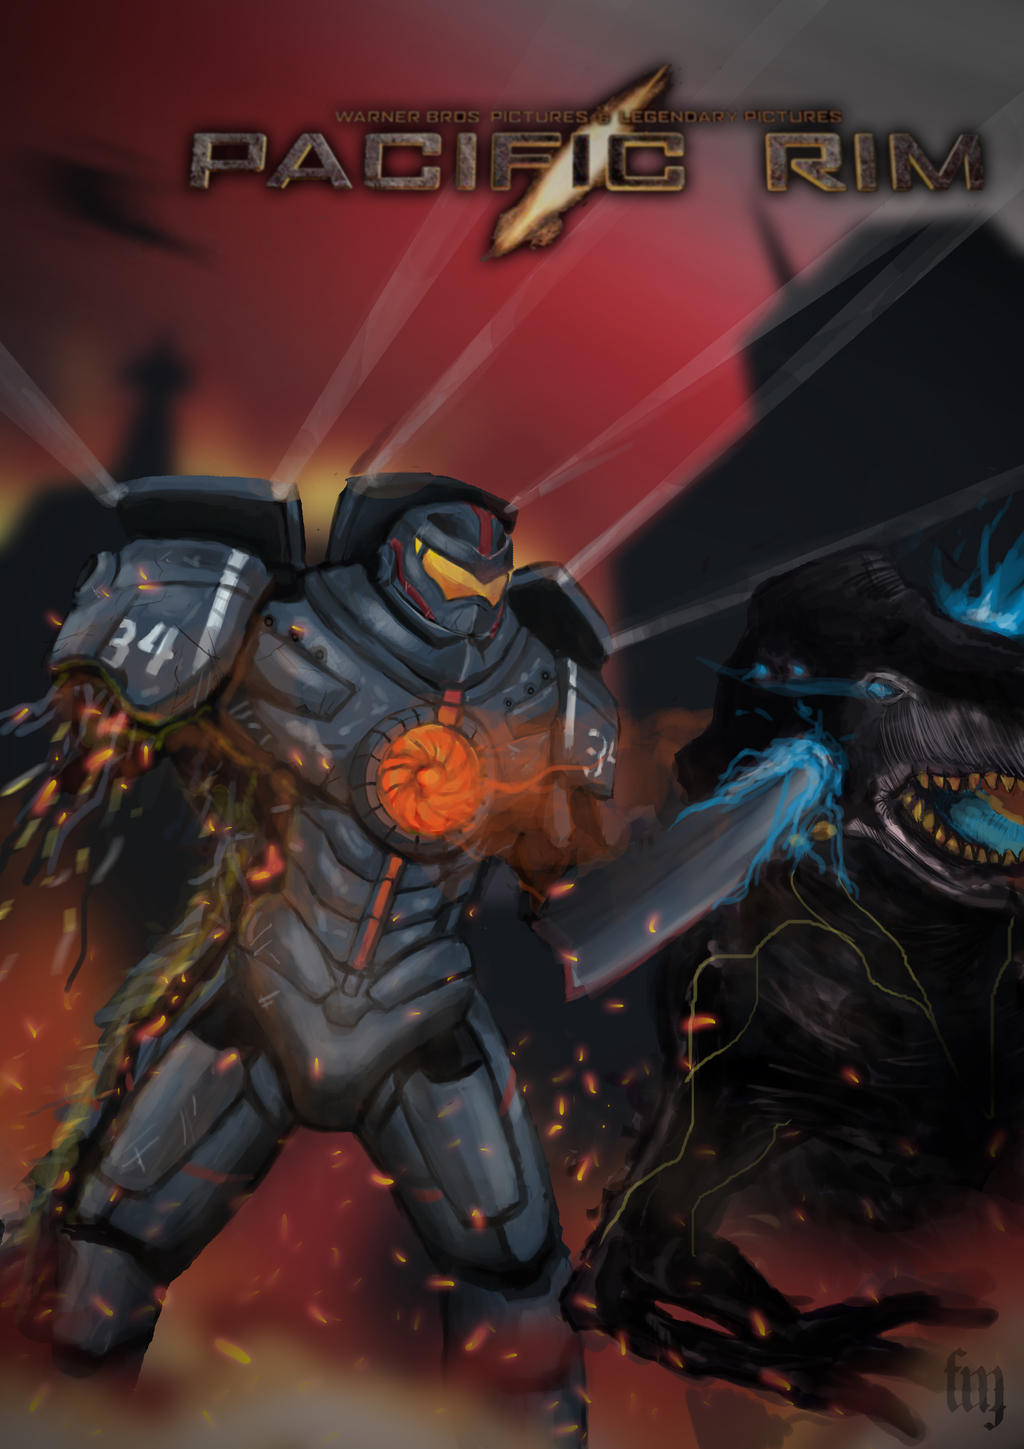 Gipsy Danger V Knifehead by 49joker on DeviantArt